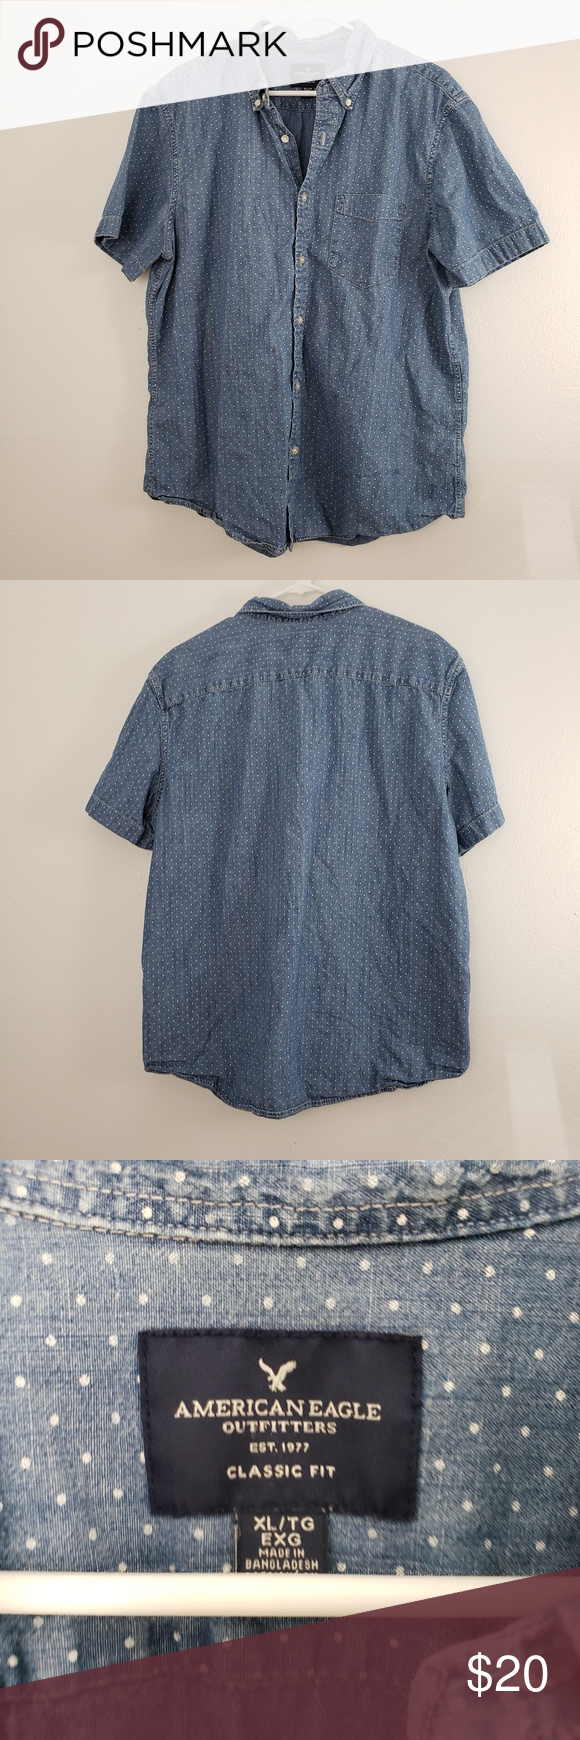 AEO Casual Button Down Short Sleeve Shirt Gently used  Brand: American Eagle Outfitters  Size: XL  Color: Blue with white polka dot  No measurements if you need measurements please leave me a comment.  Item bagged in a waterproof bag and ready to be shipped.  09/26/2019 American Eagle Outfitters Shirts Casual Button Down Shirts